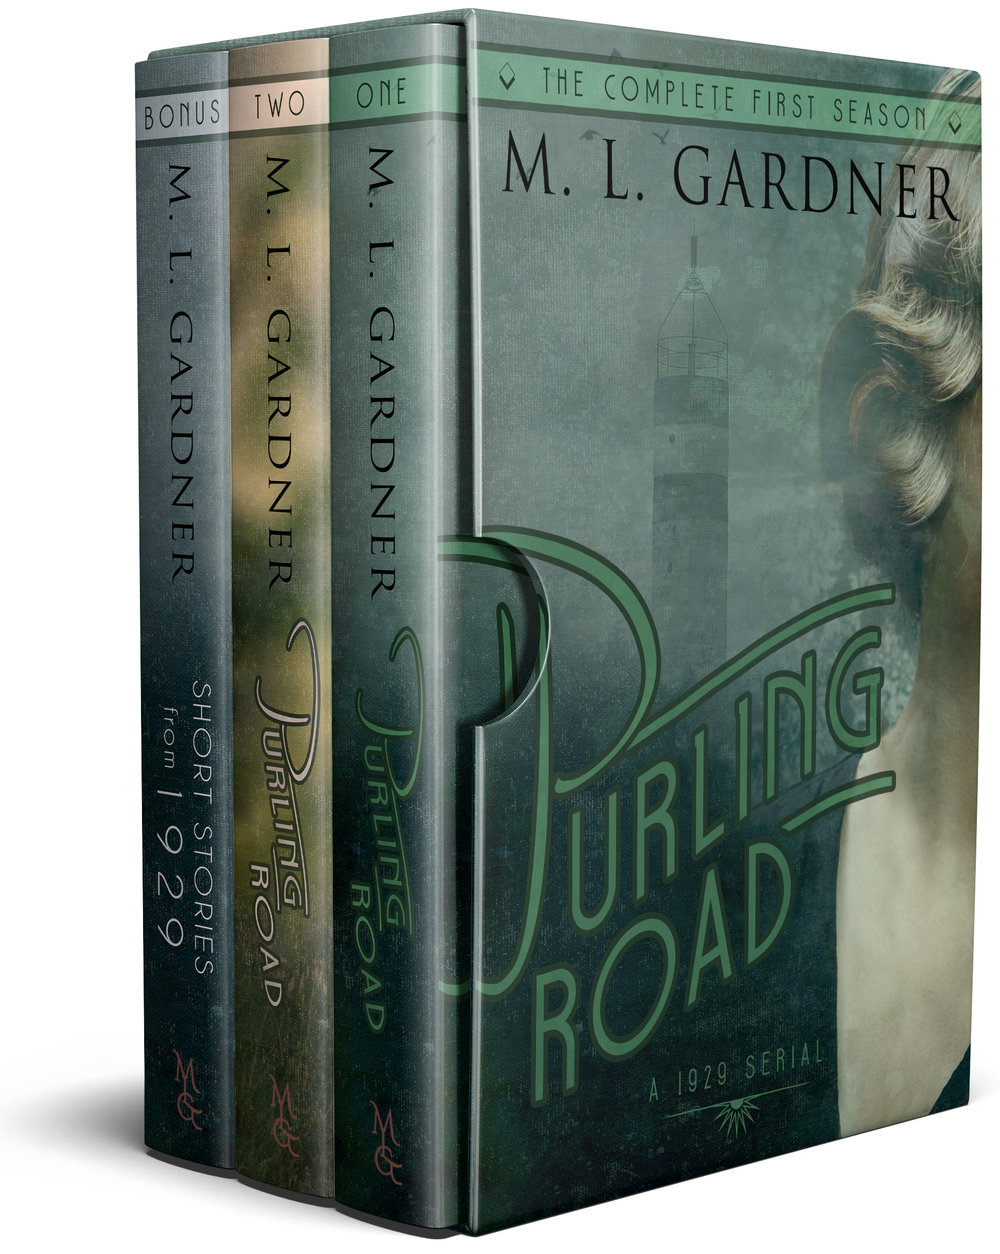 Purling Road Boxed Set Cropped.jpg